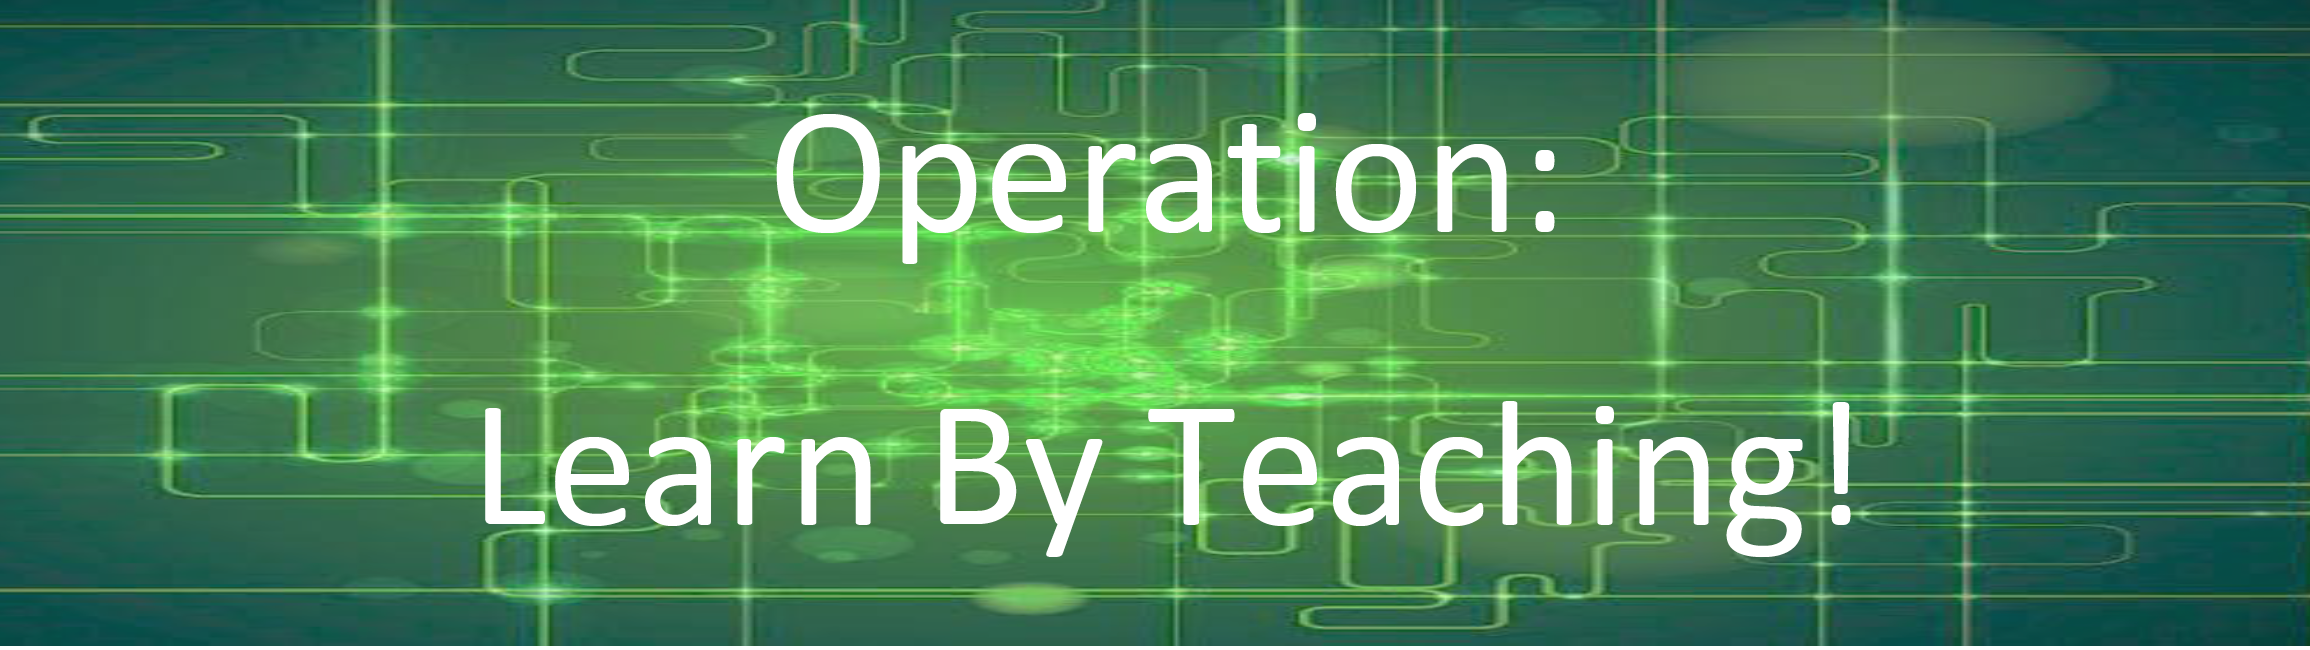 operation learn by teaching banner